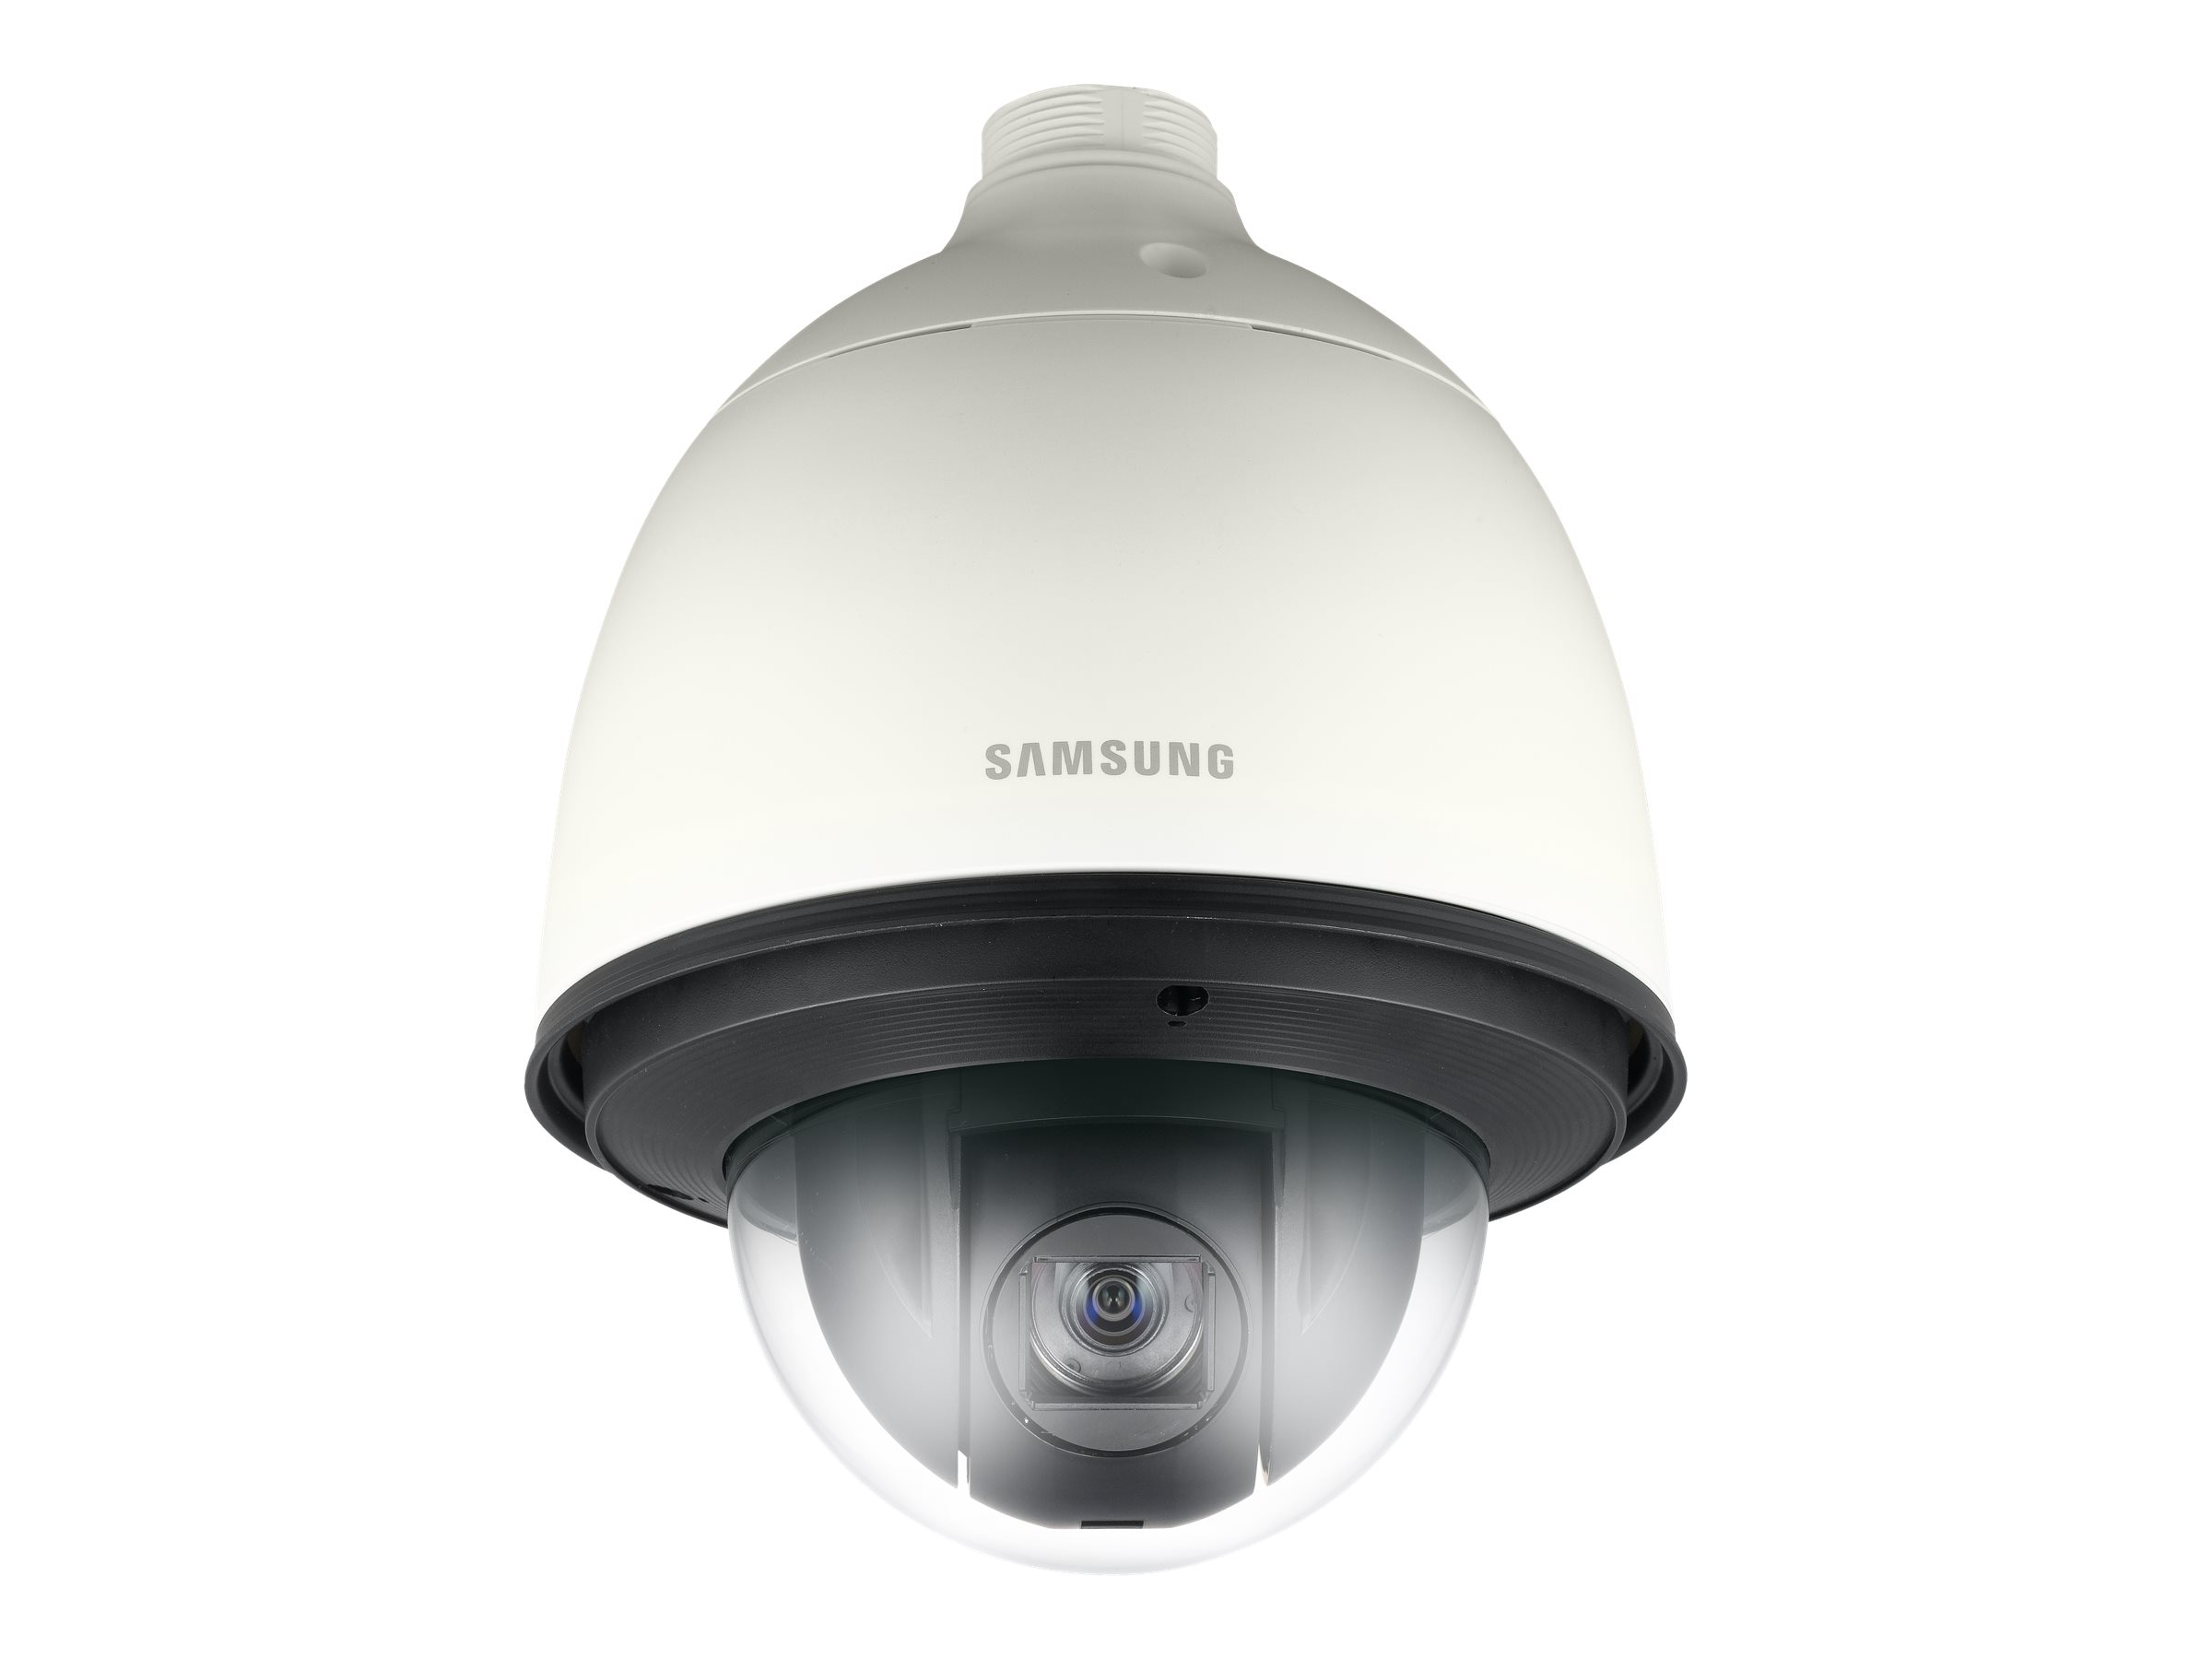 Samsung 2MP HD 23x Network PTZ Dome Camera, SNP-L6233H